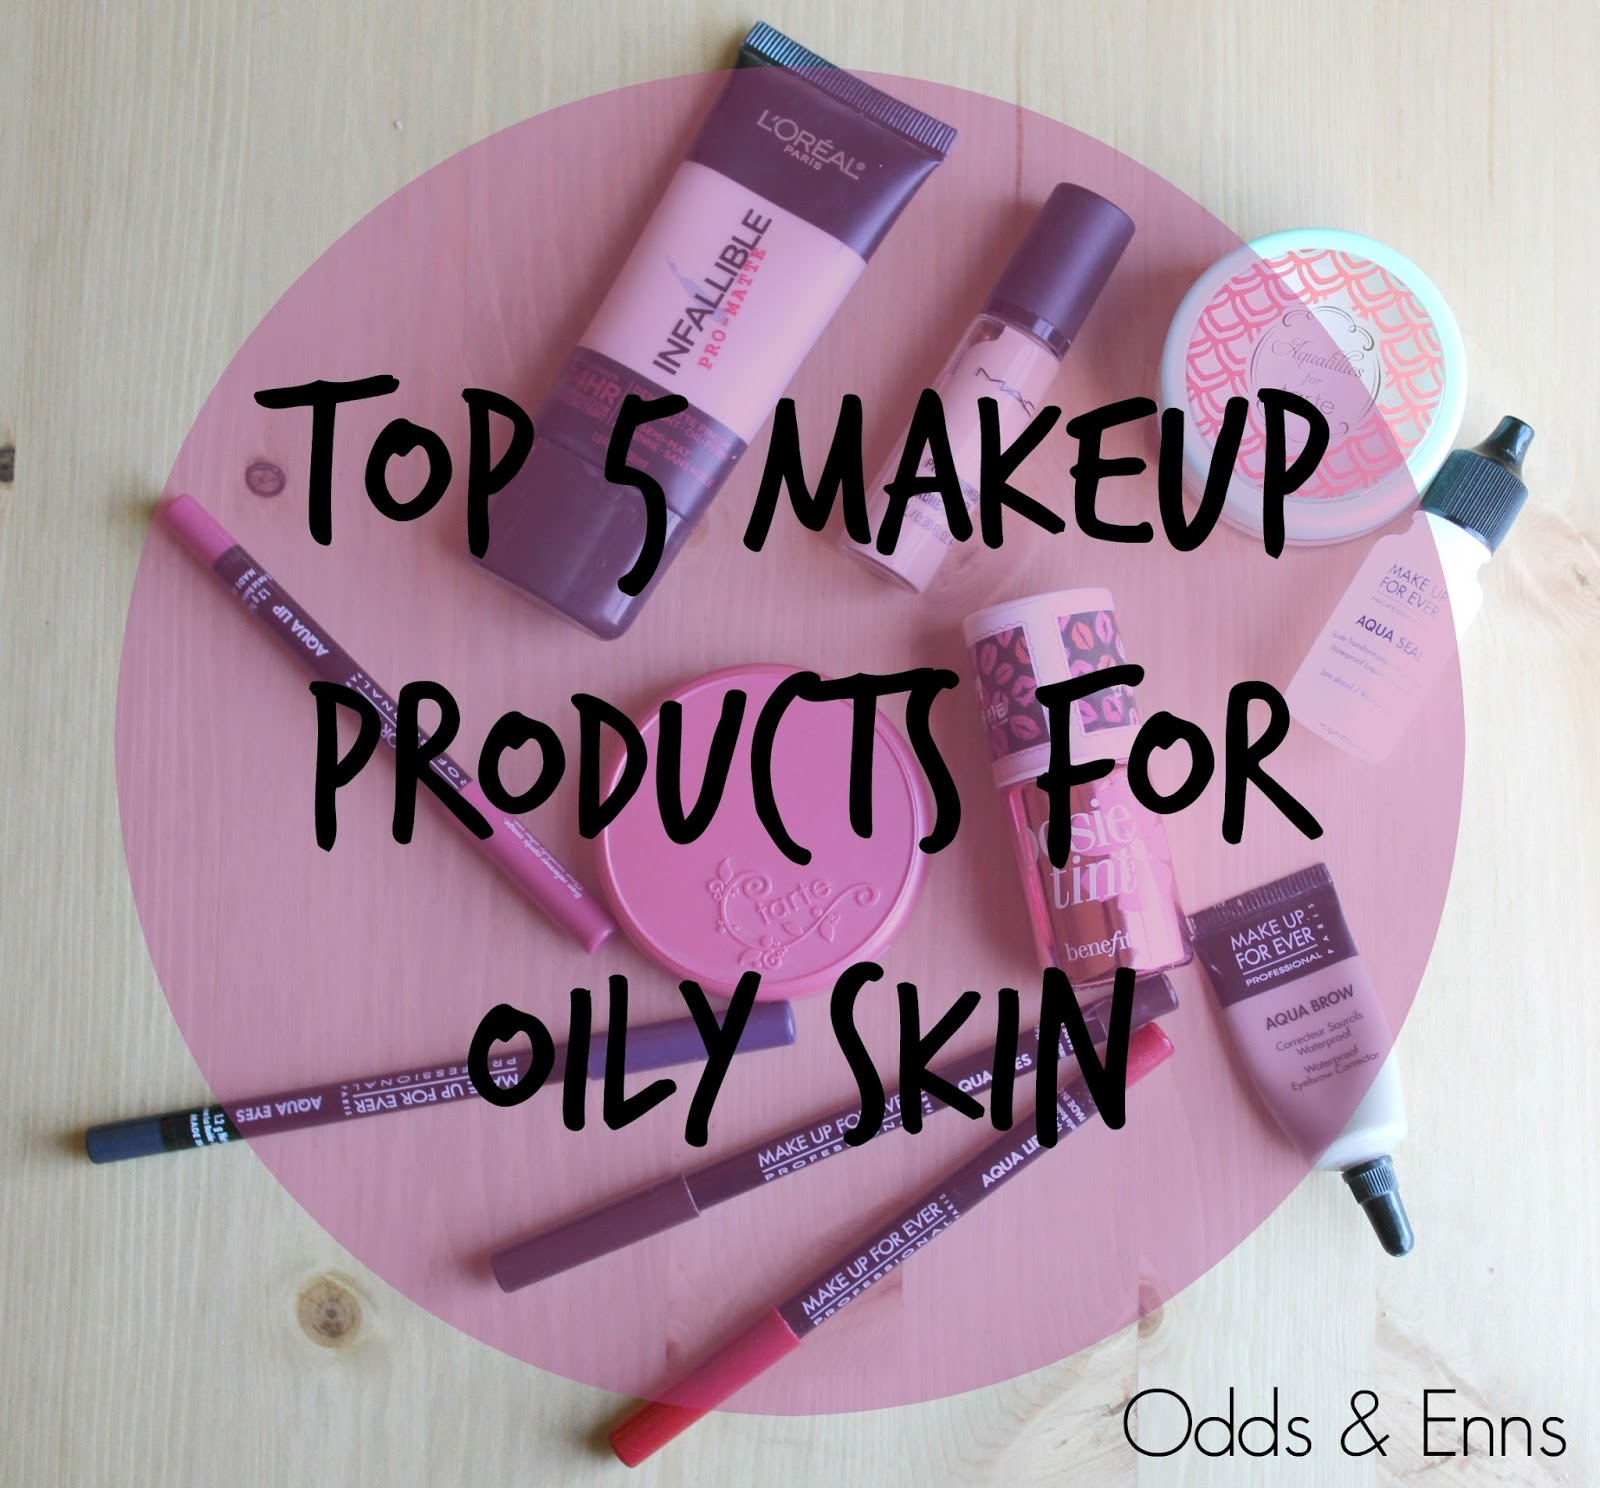 Top 5 Makeup Products for Oily Skin